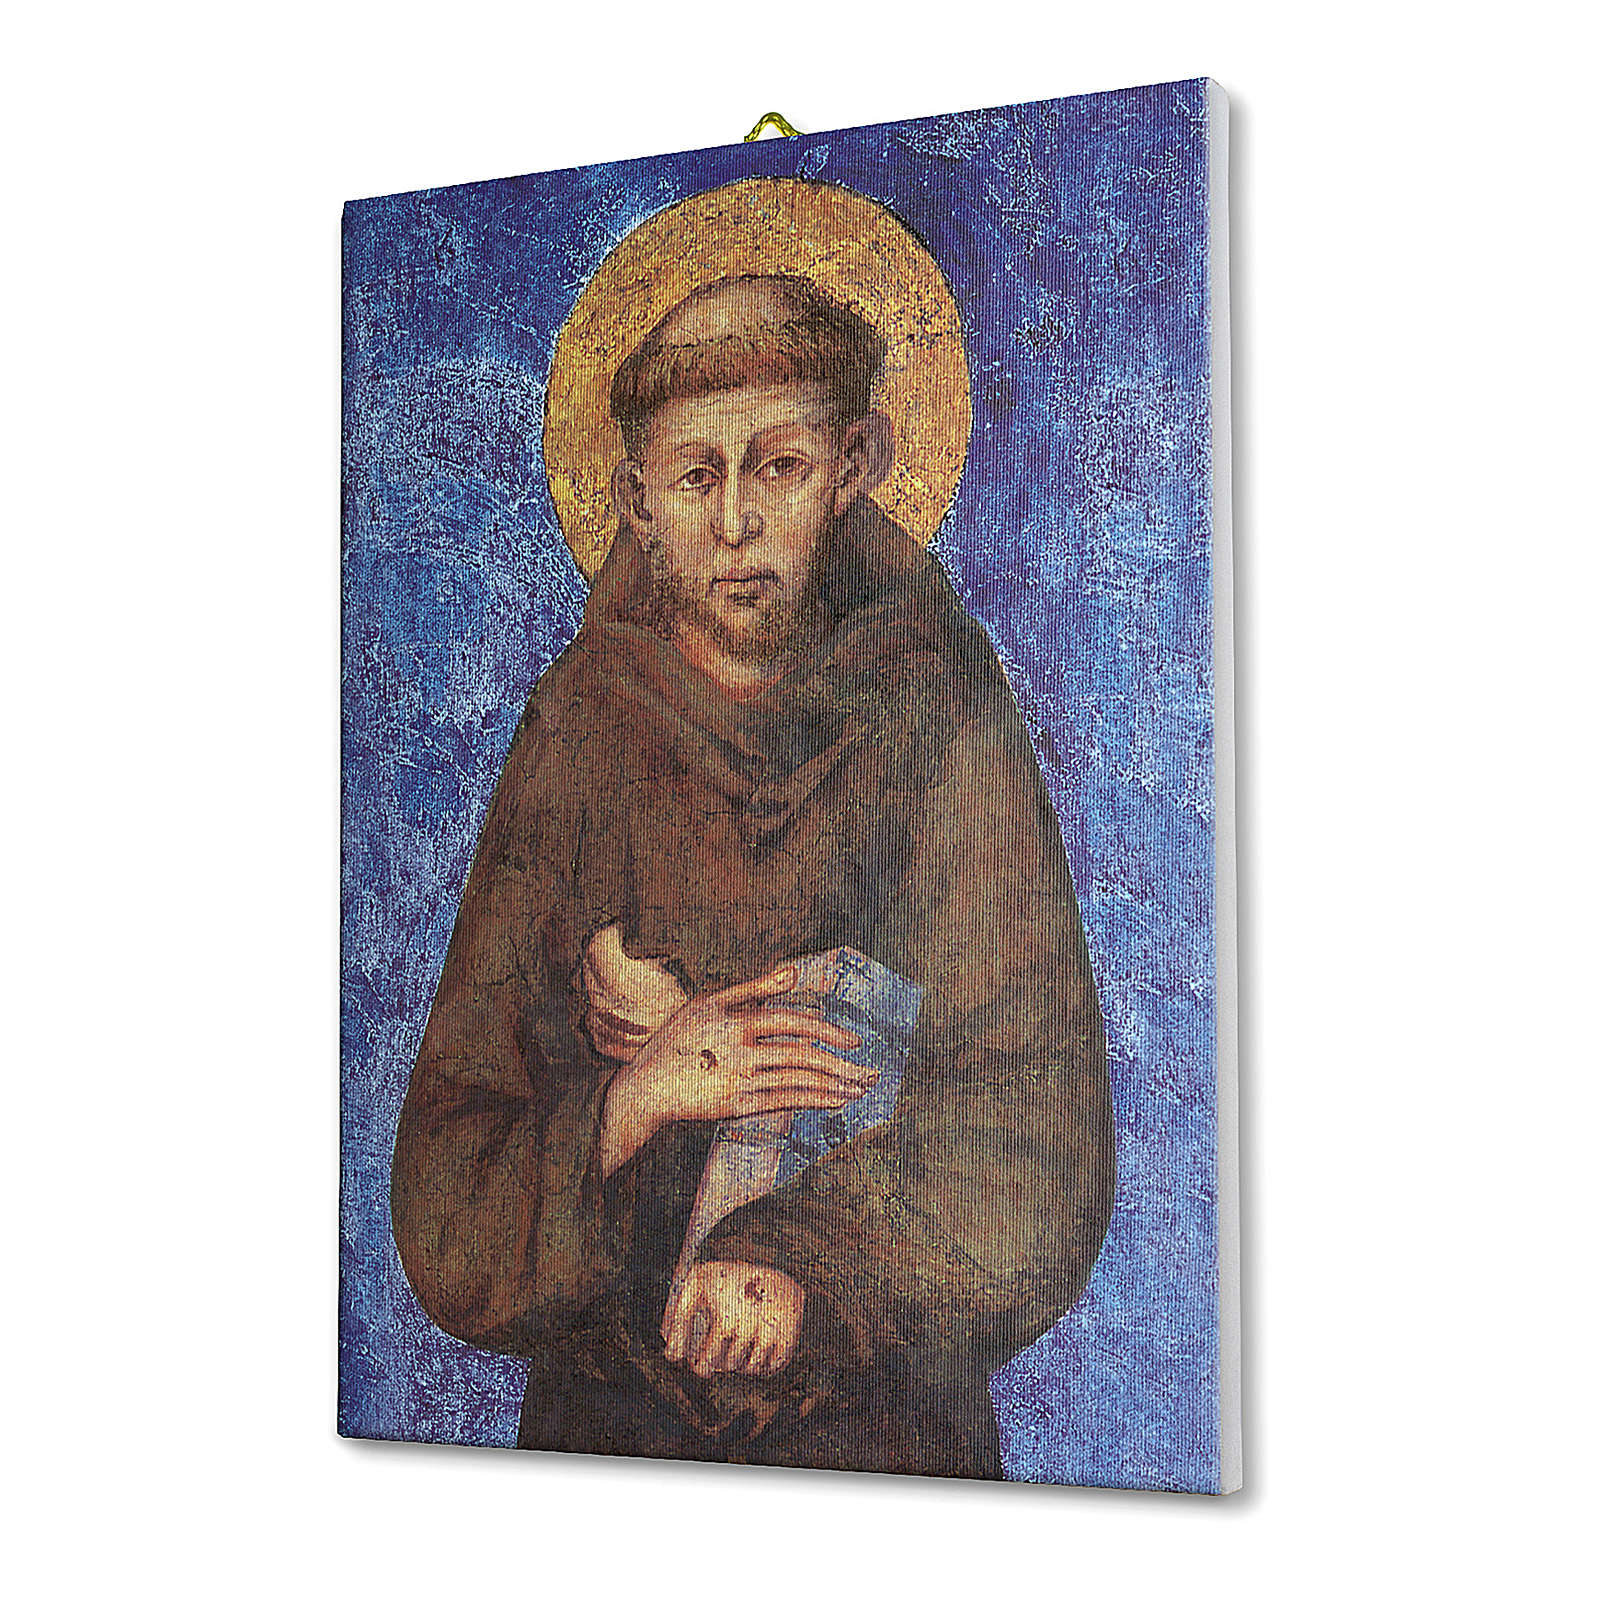 Saint Francis by Cimabue print on canvas 40x30 cm 3